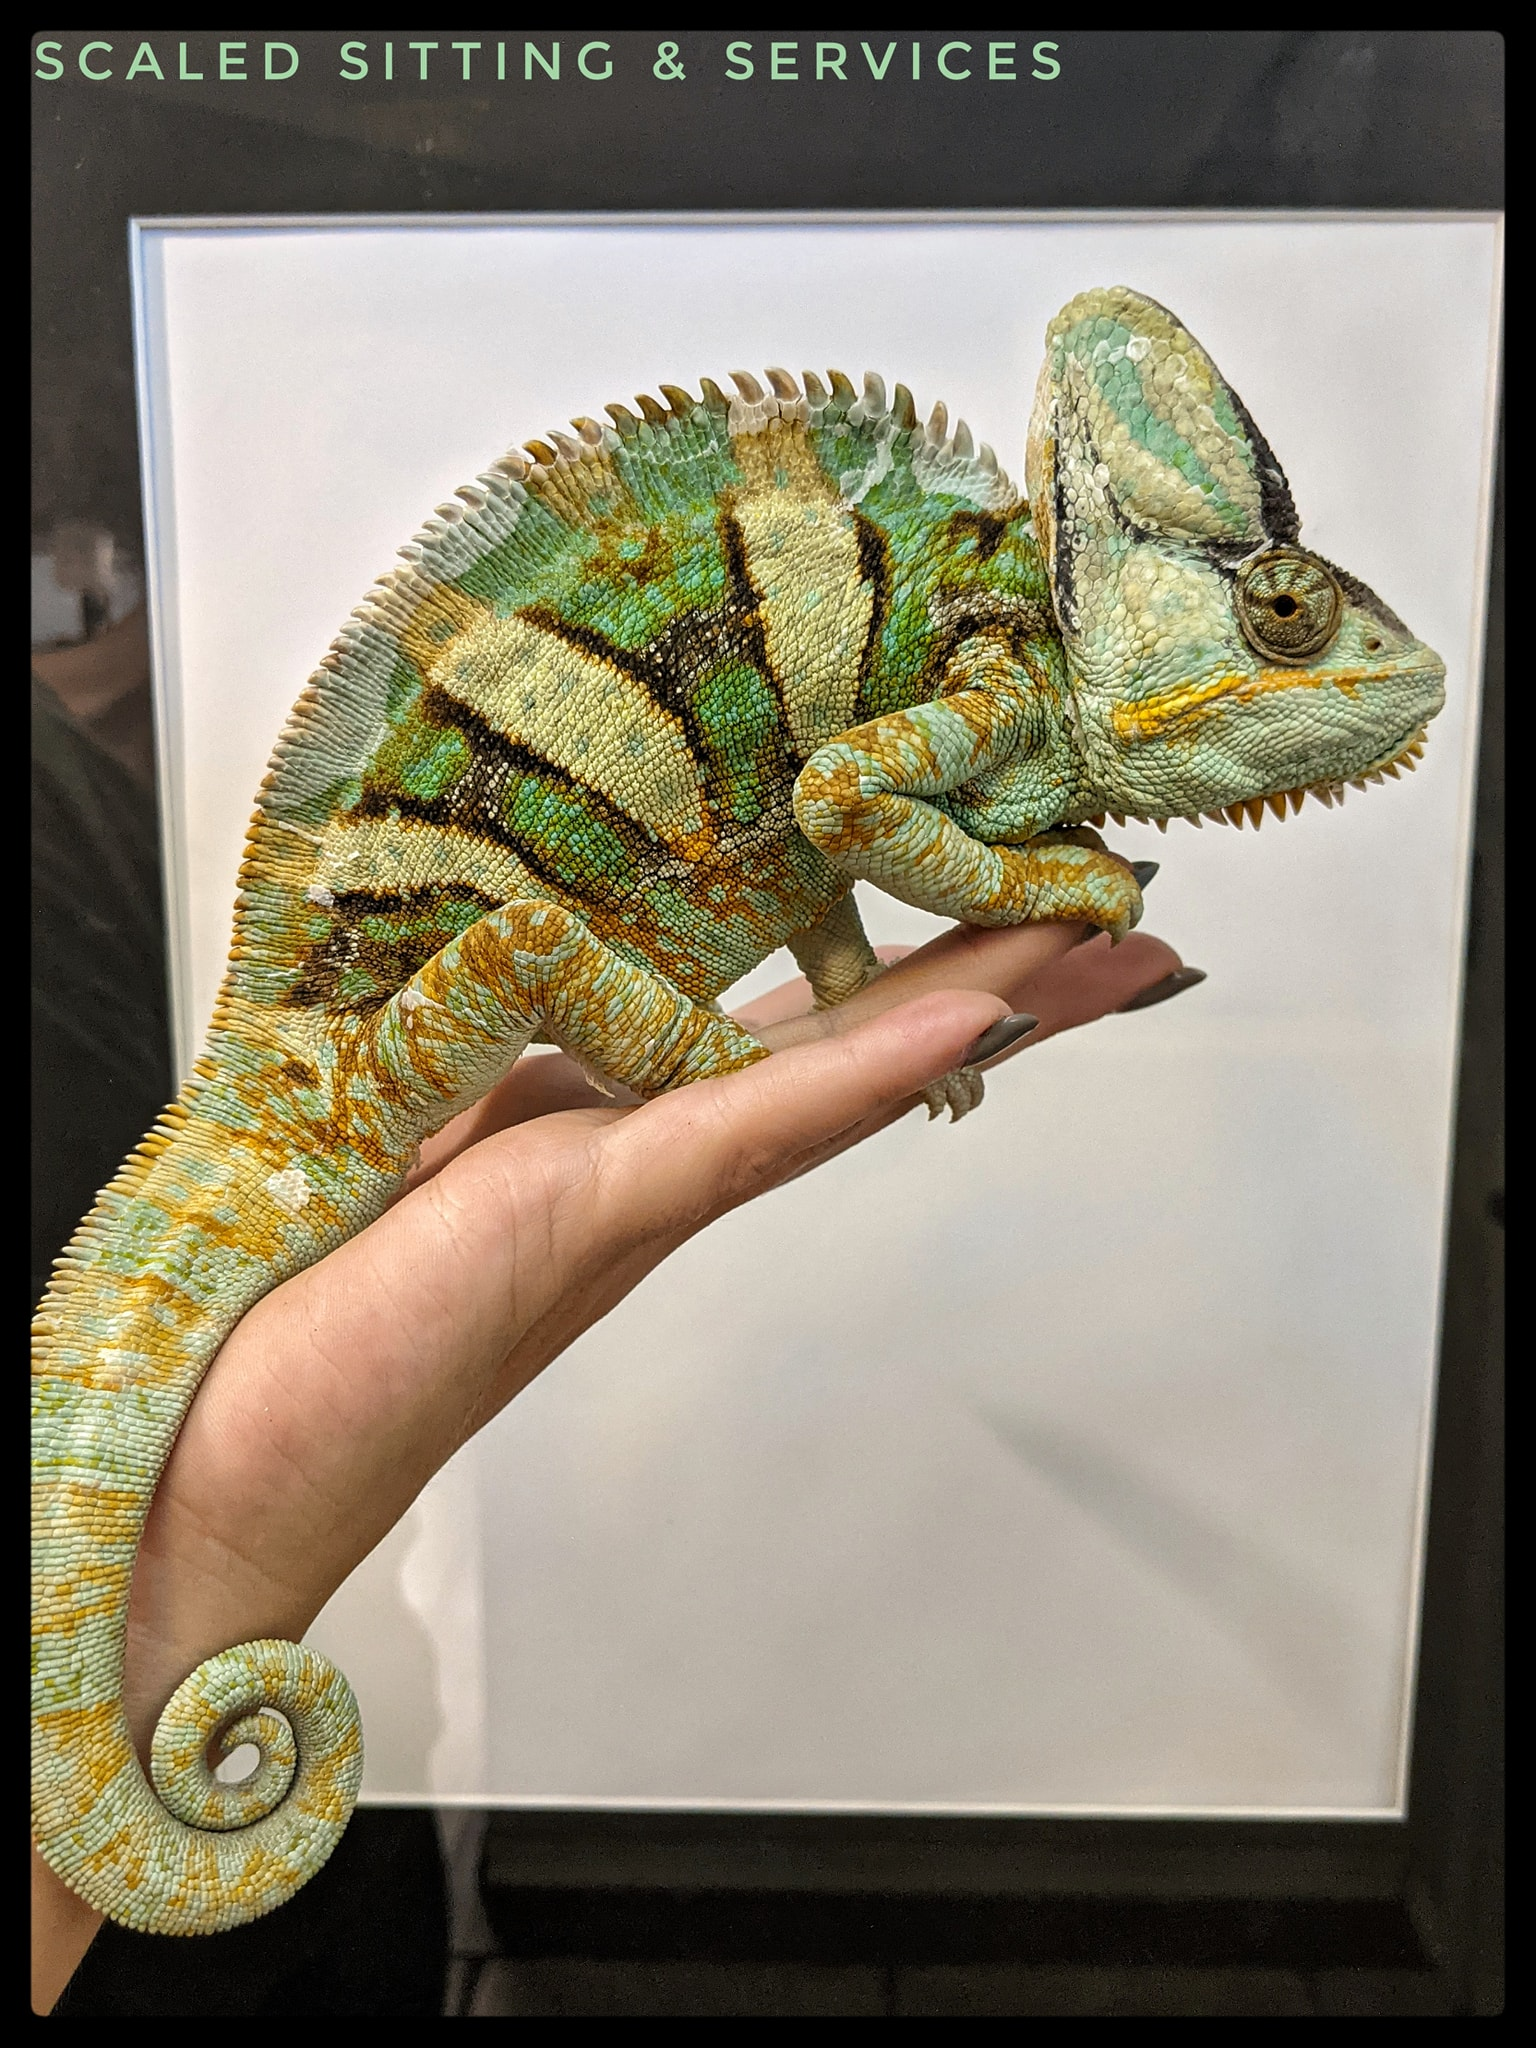 adult male veiled chameleon perched on a hand in front of white background